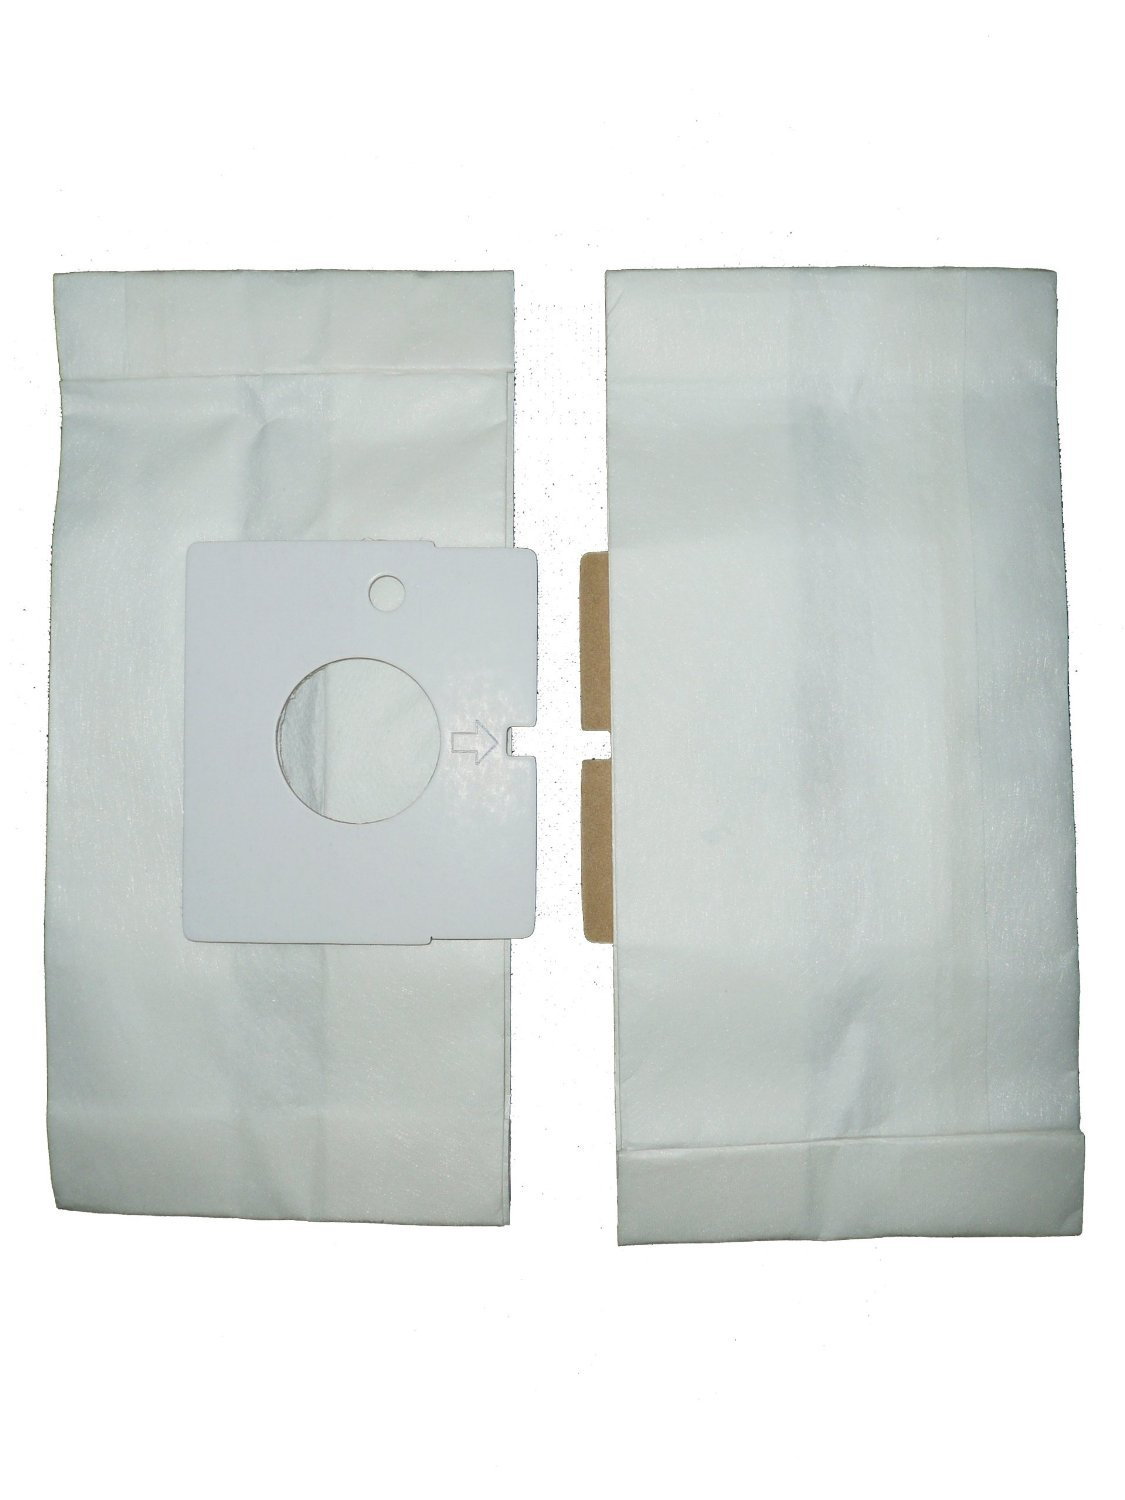 40 Kenmore Type M Sears 51195 Magic Blue LG Vacuum Bags, Ultracare, Canister Vacuum Cleaners, 20-51195, 609323, 21195, 21295, 24195, 21495